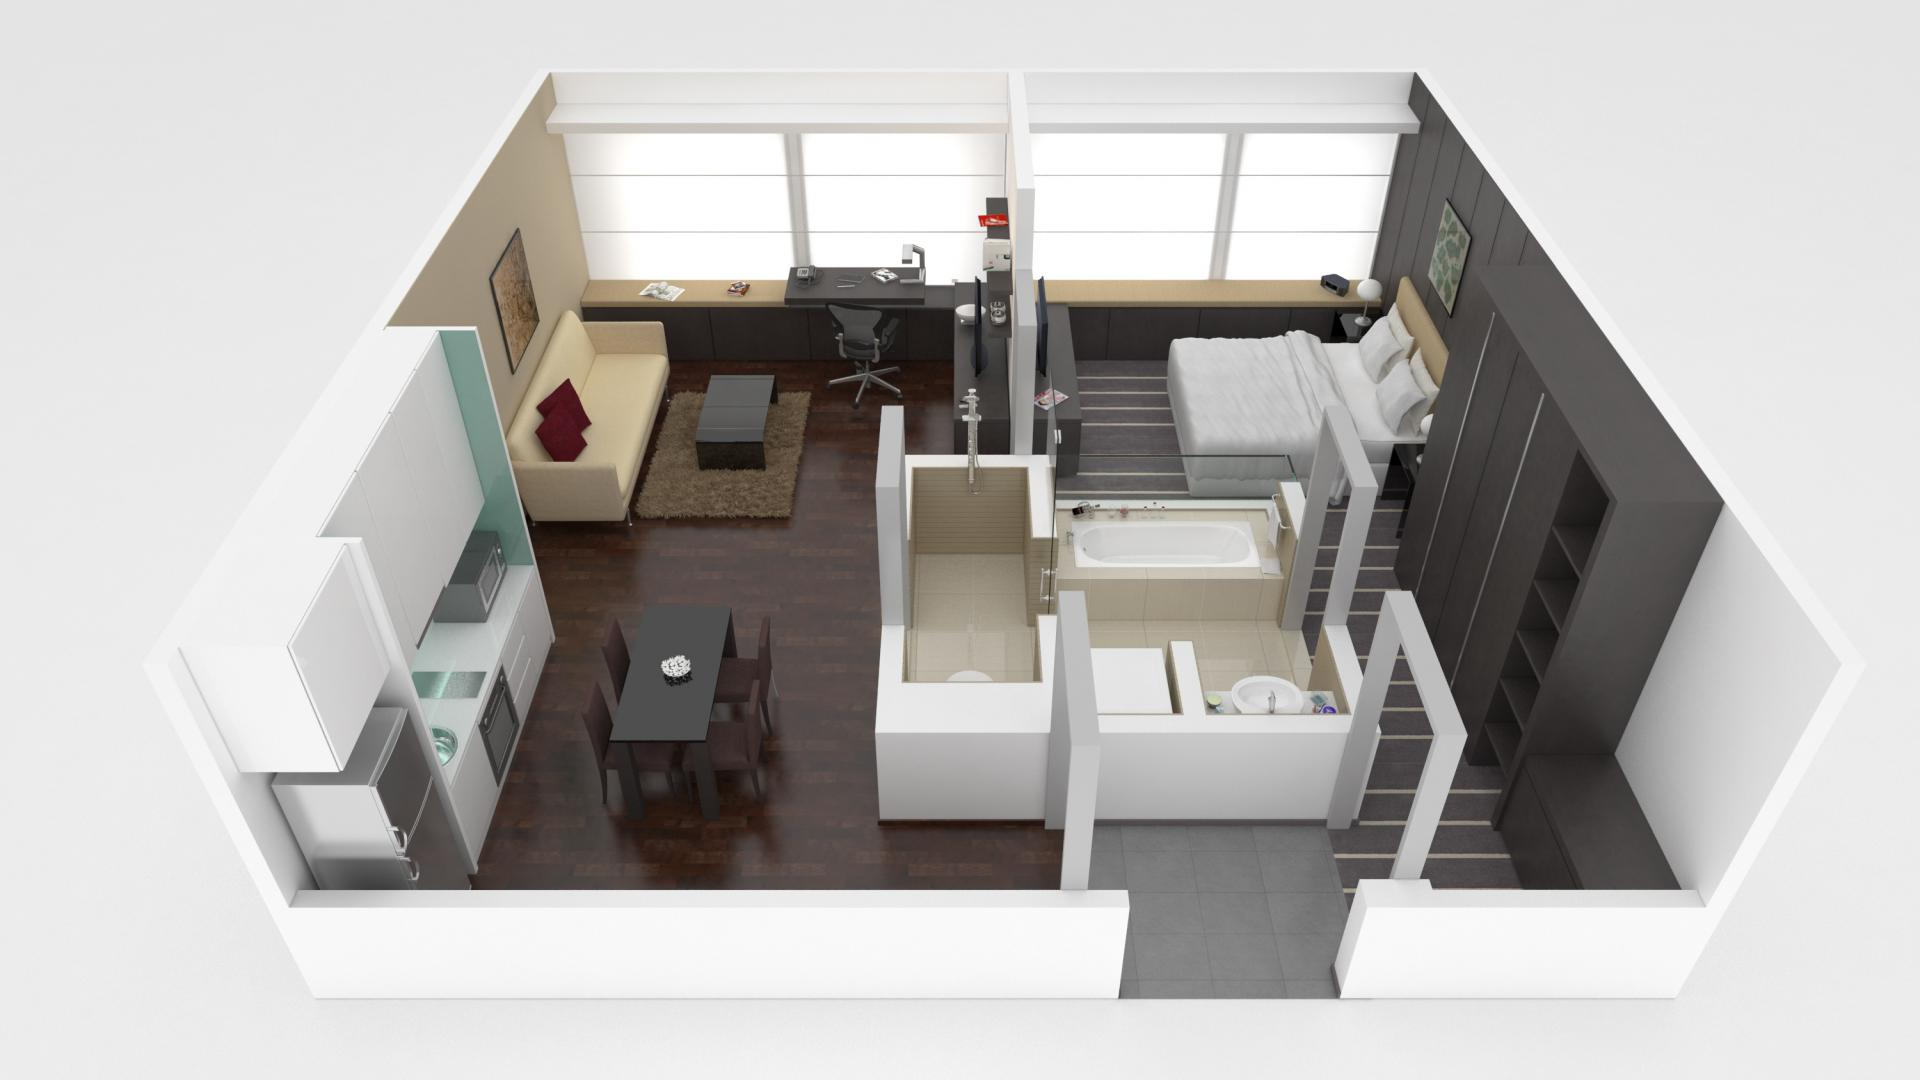 1 bed exec floor plan at Pan Pacific Serviced Suites Orchard